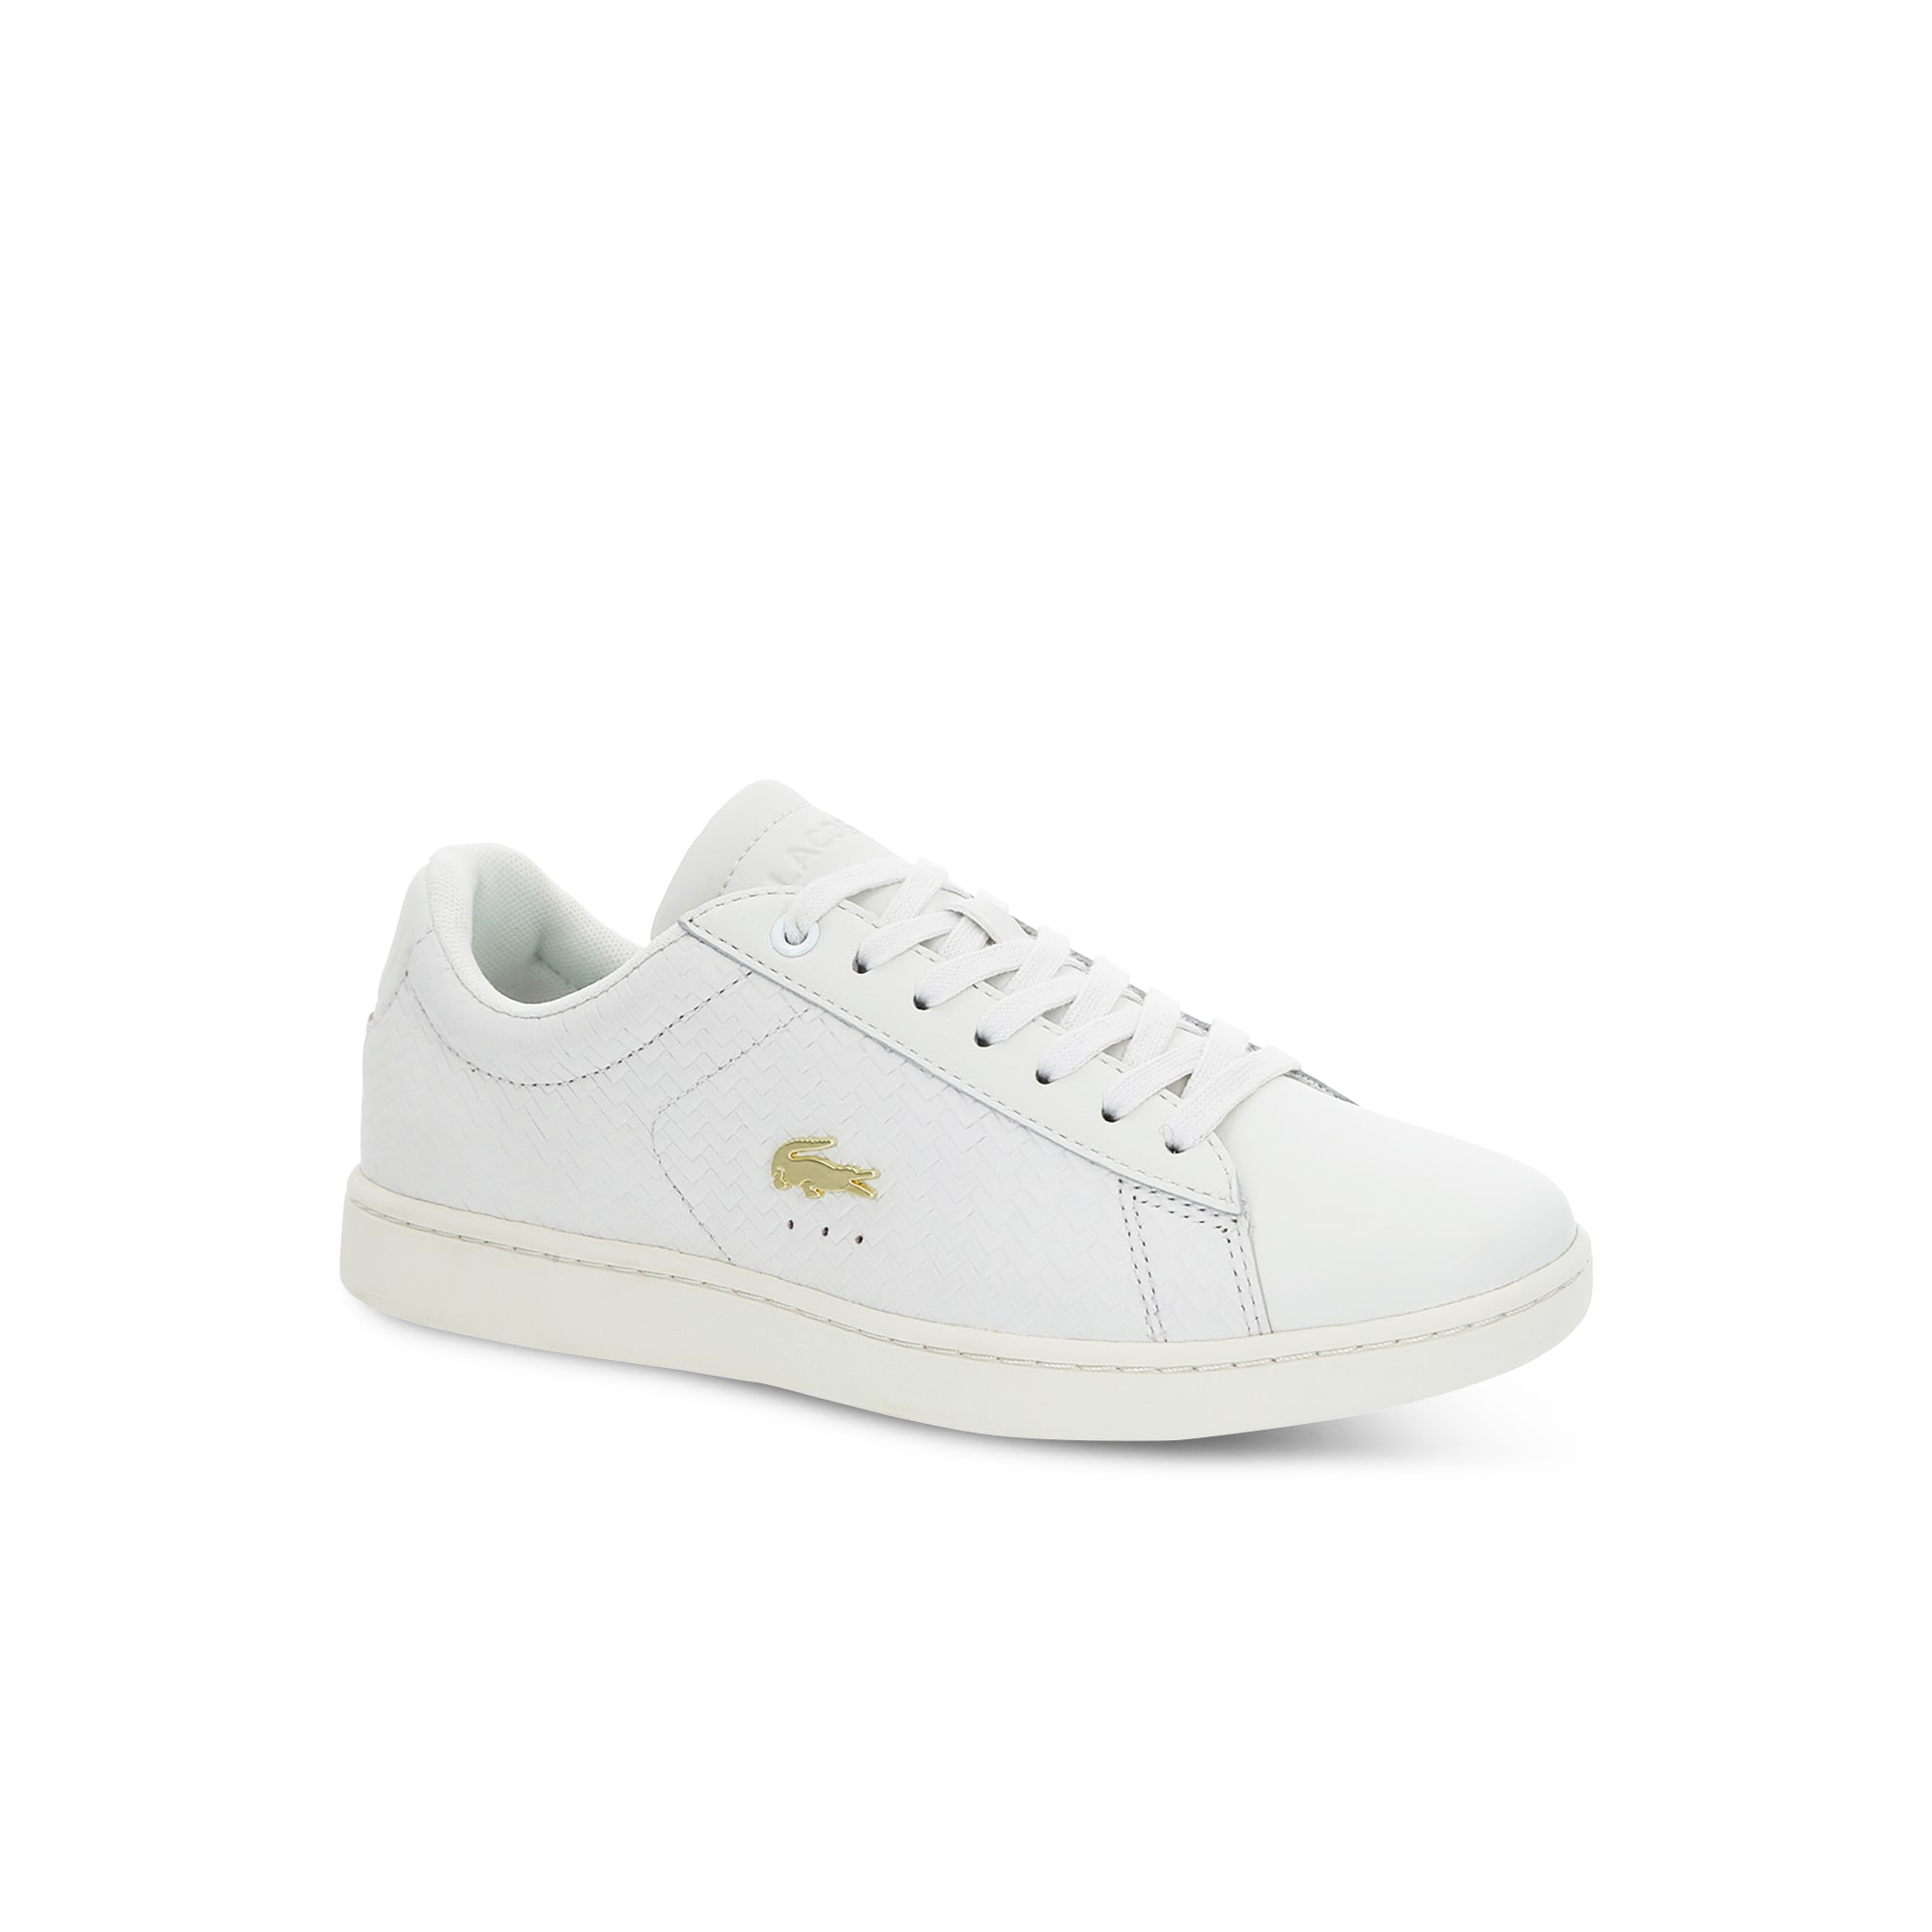 c6073e5f7eac1 + 1 color · Women s Carnaby Evo Textured Leather Trainers